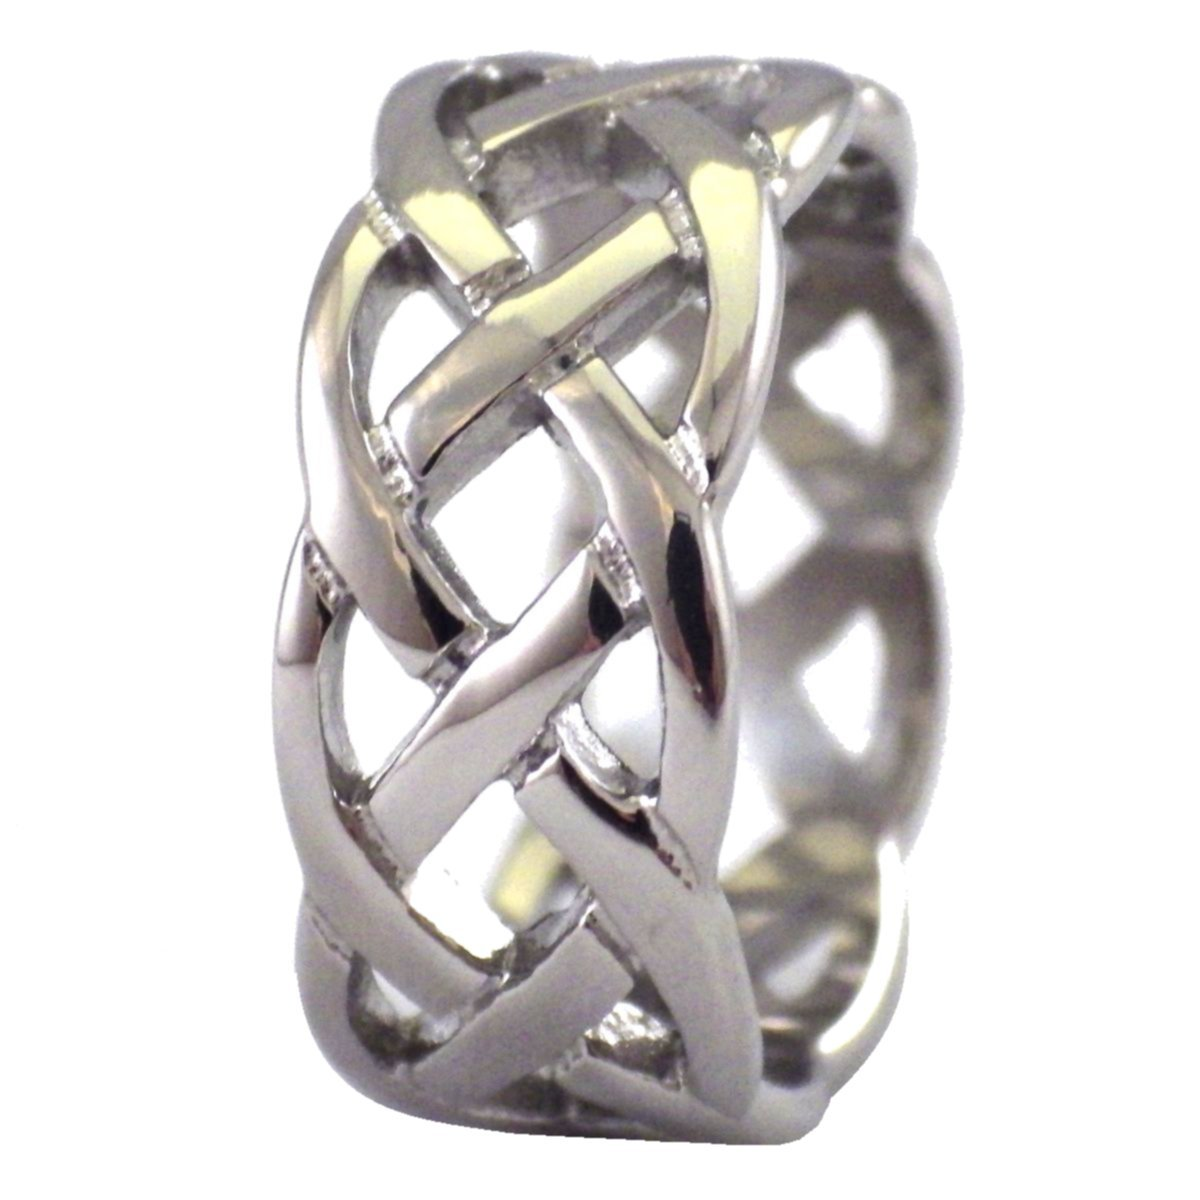 Fantasy Forge Jewelry Open Weave Celtic Knot Stainless Steel Ring Wedding Band 9mm Size 9